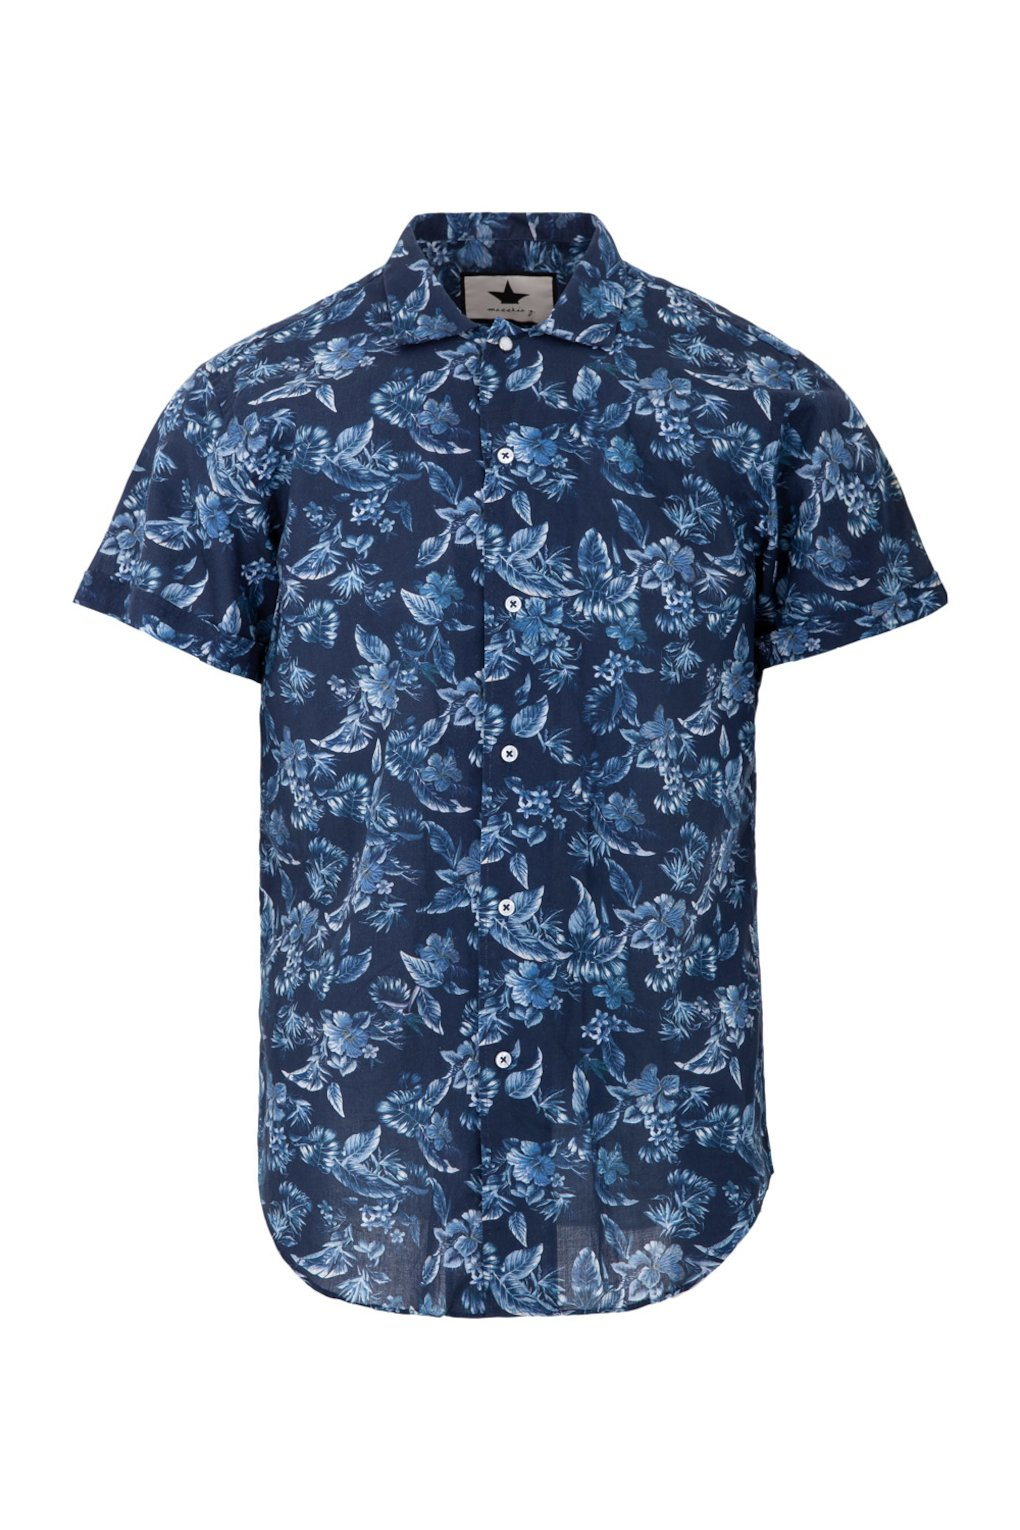 Man's Hawaiian shirt